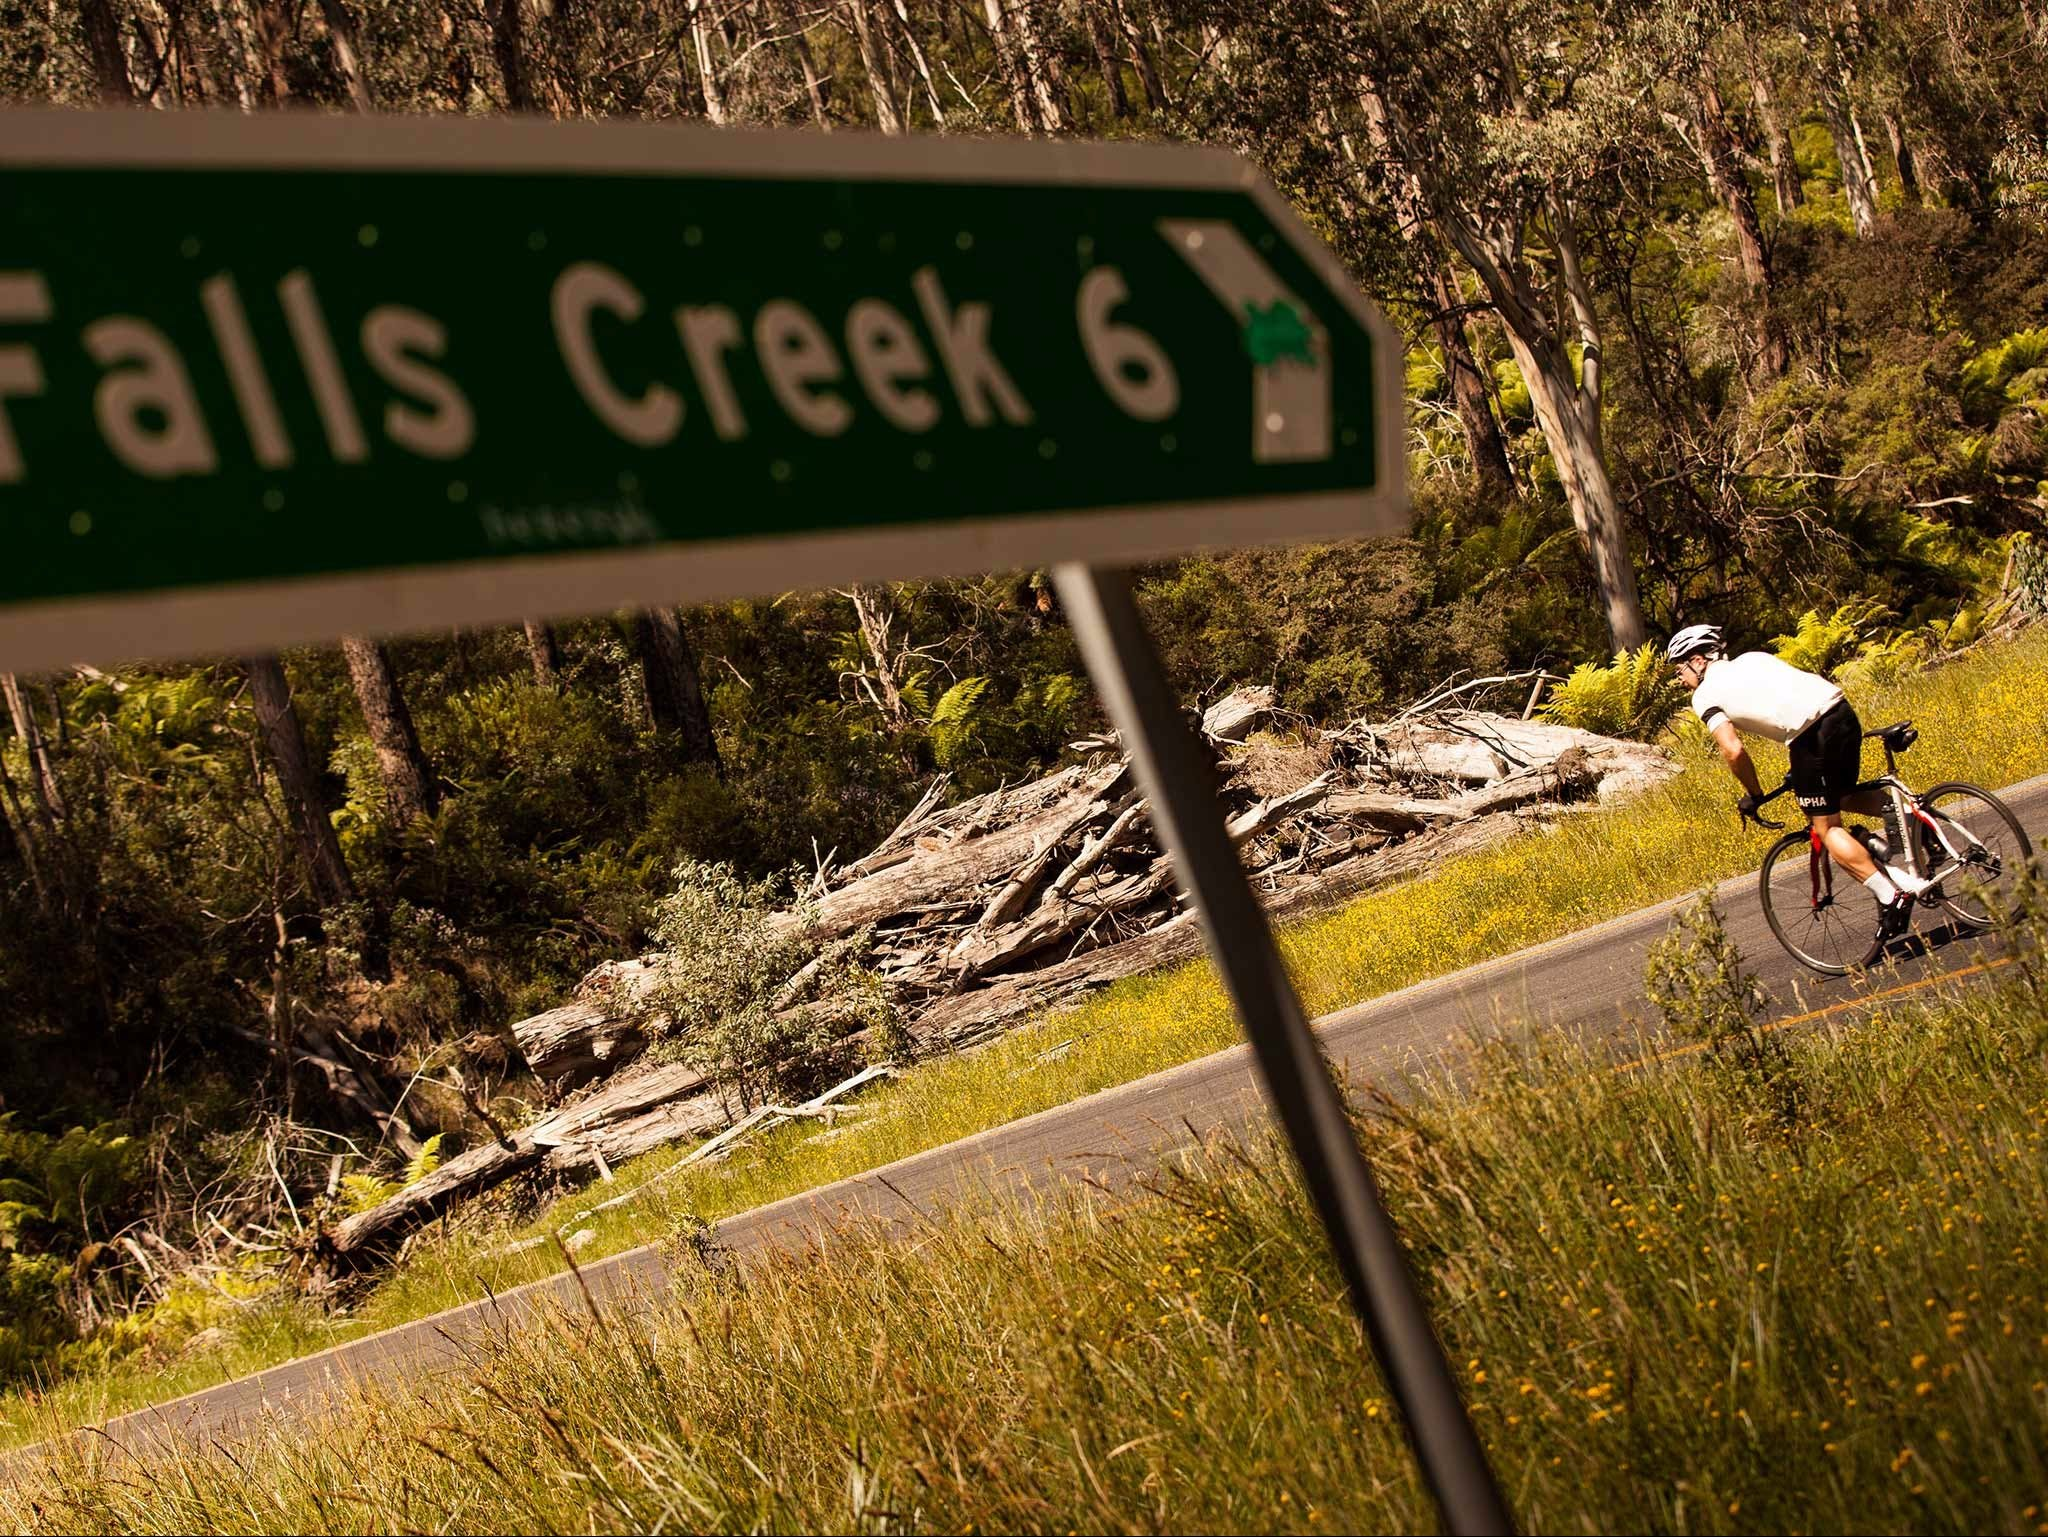 7 Peaks Ride - Falls Creek - Accommodation Daintree